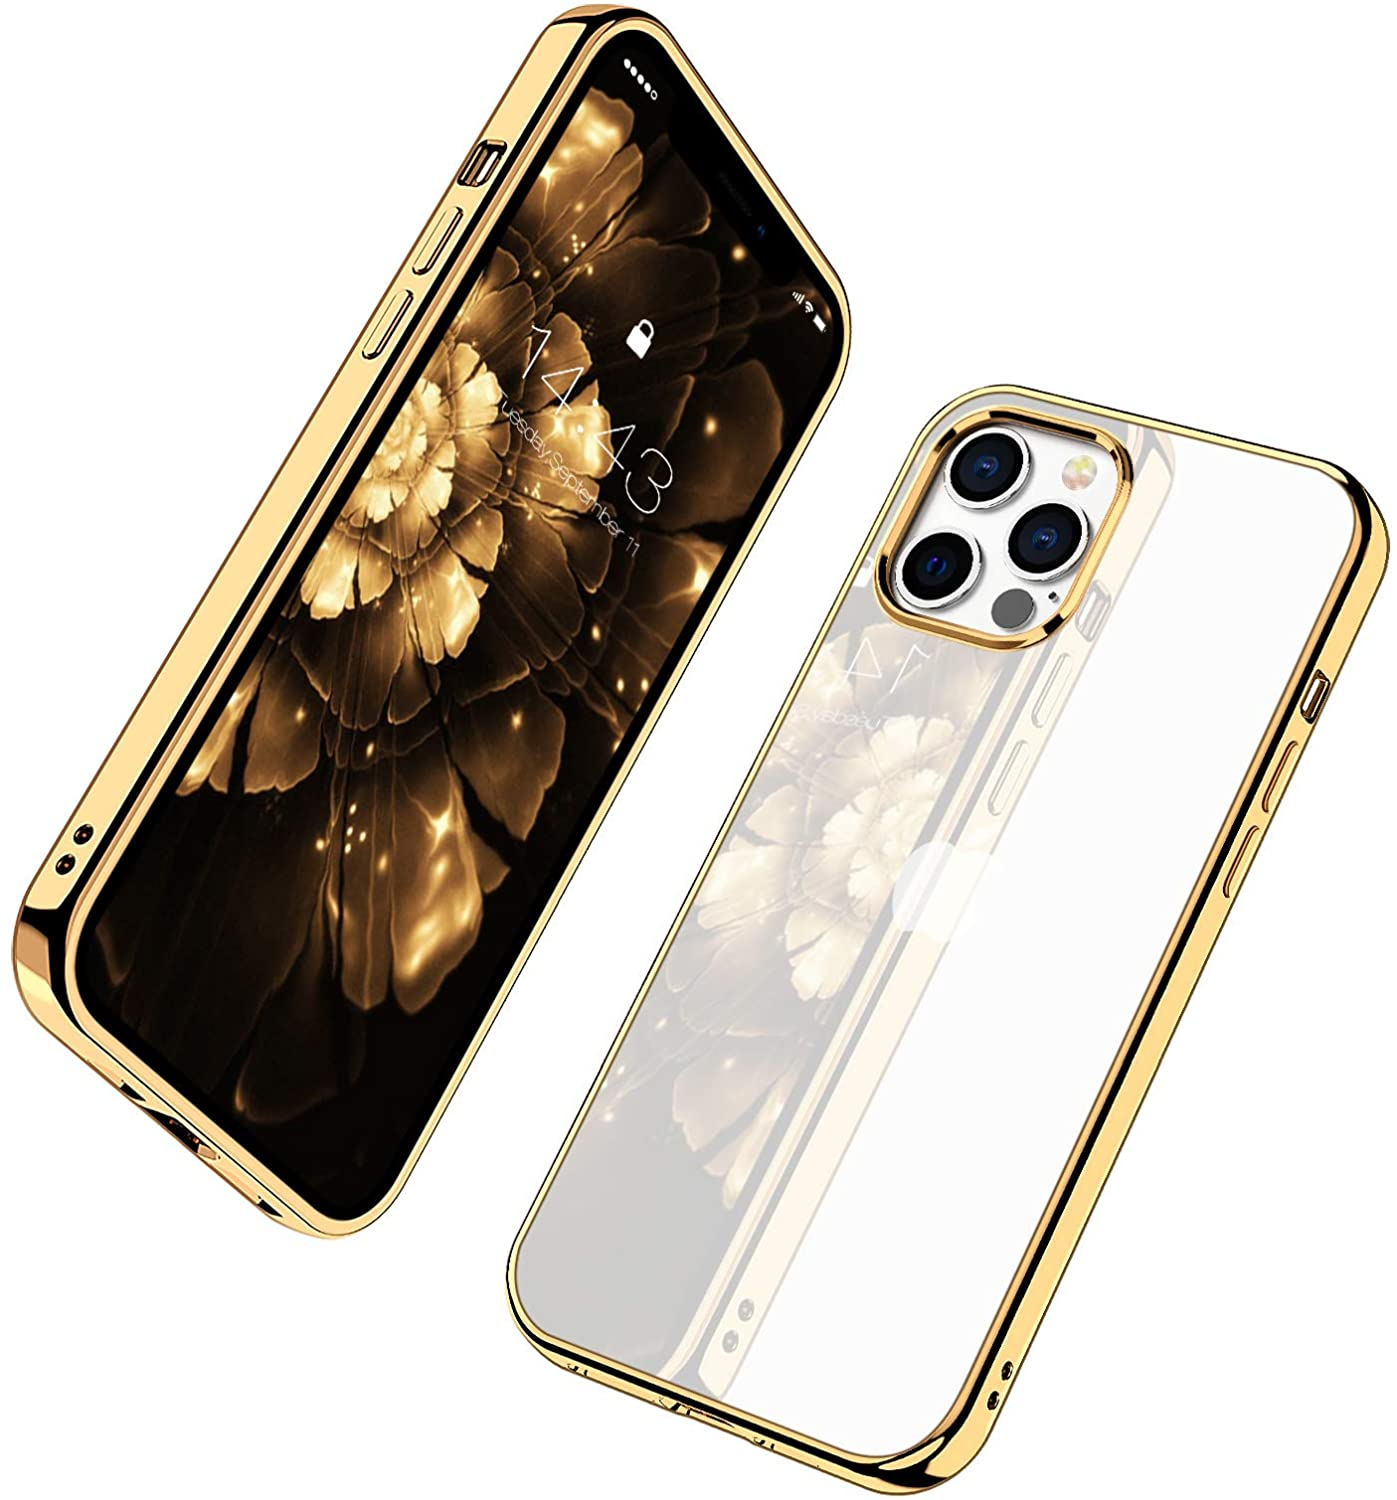 MILPROX Compatible for iPhone 12 Case and for iPhone 12 Pro Clear Cases (2020), Crystal Transparent Shockproof Shell Protective Bumper Electroplated Cover- Gold